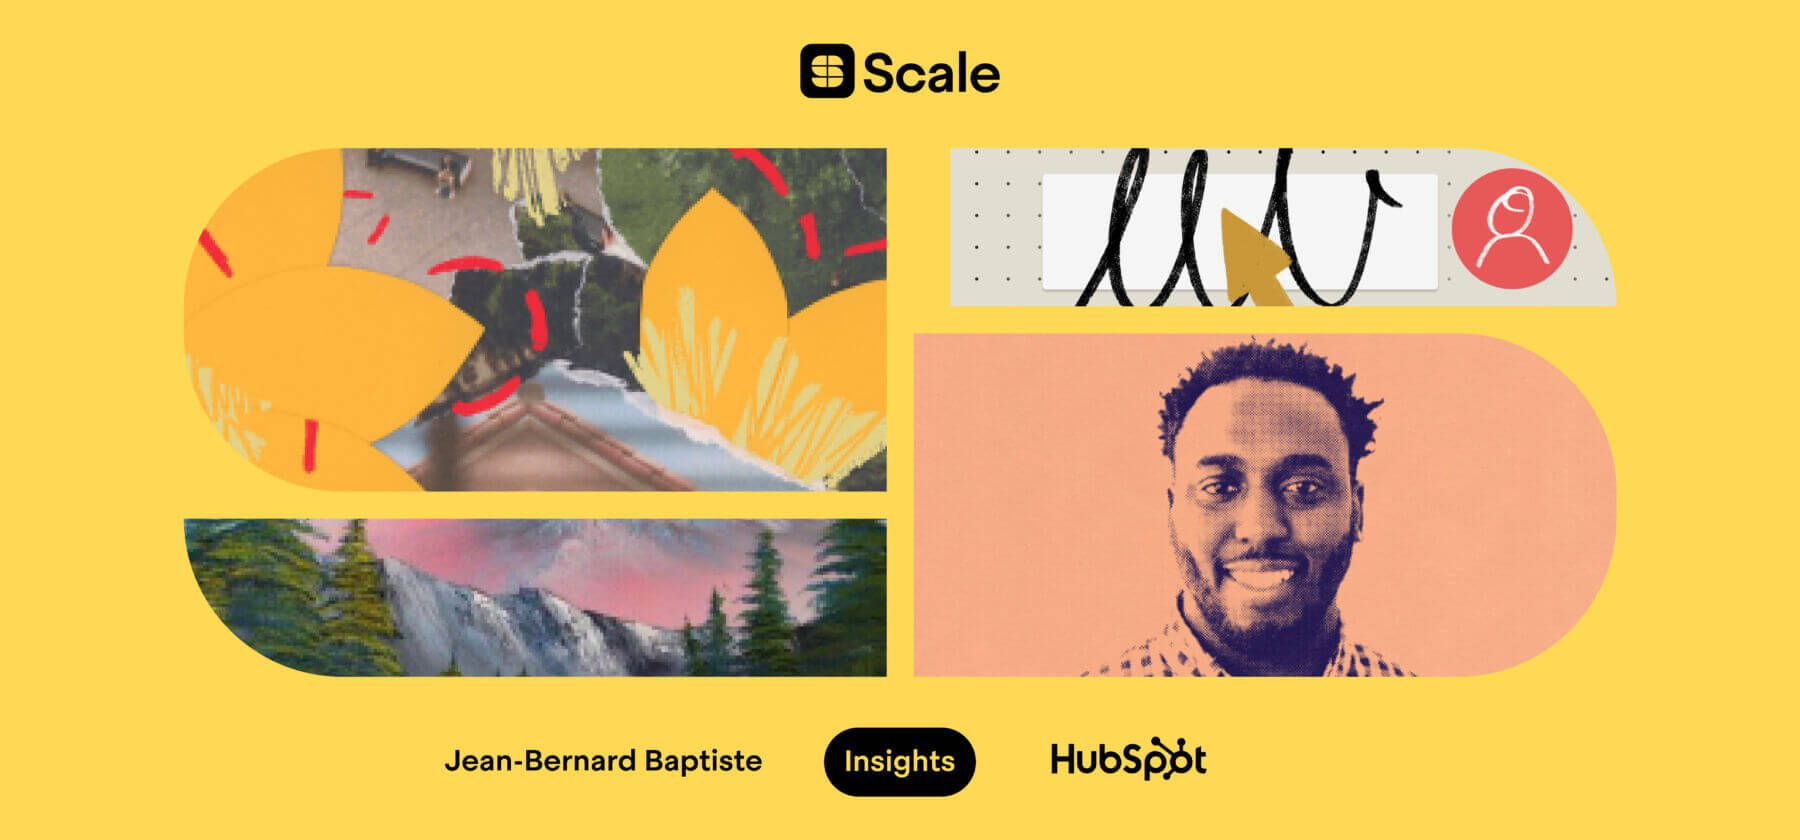 """Hero image for """"Success at scale: HubSpot's Jean-Bernard Baptiste on unlocking business growth through great customer experiences"""""""